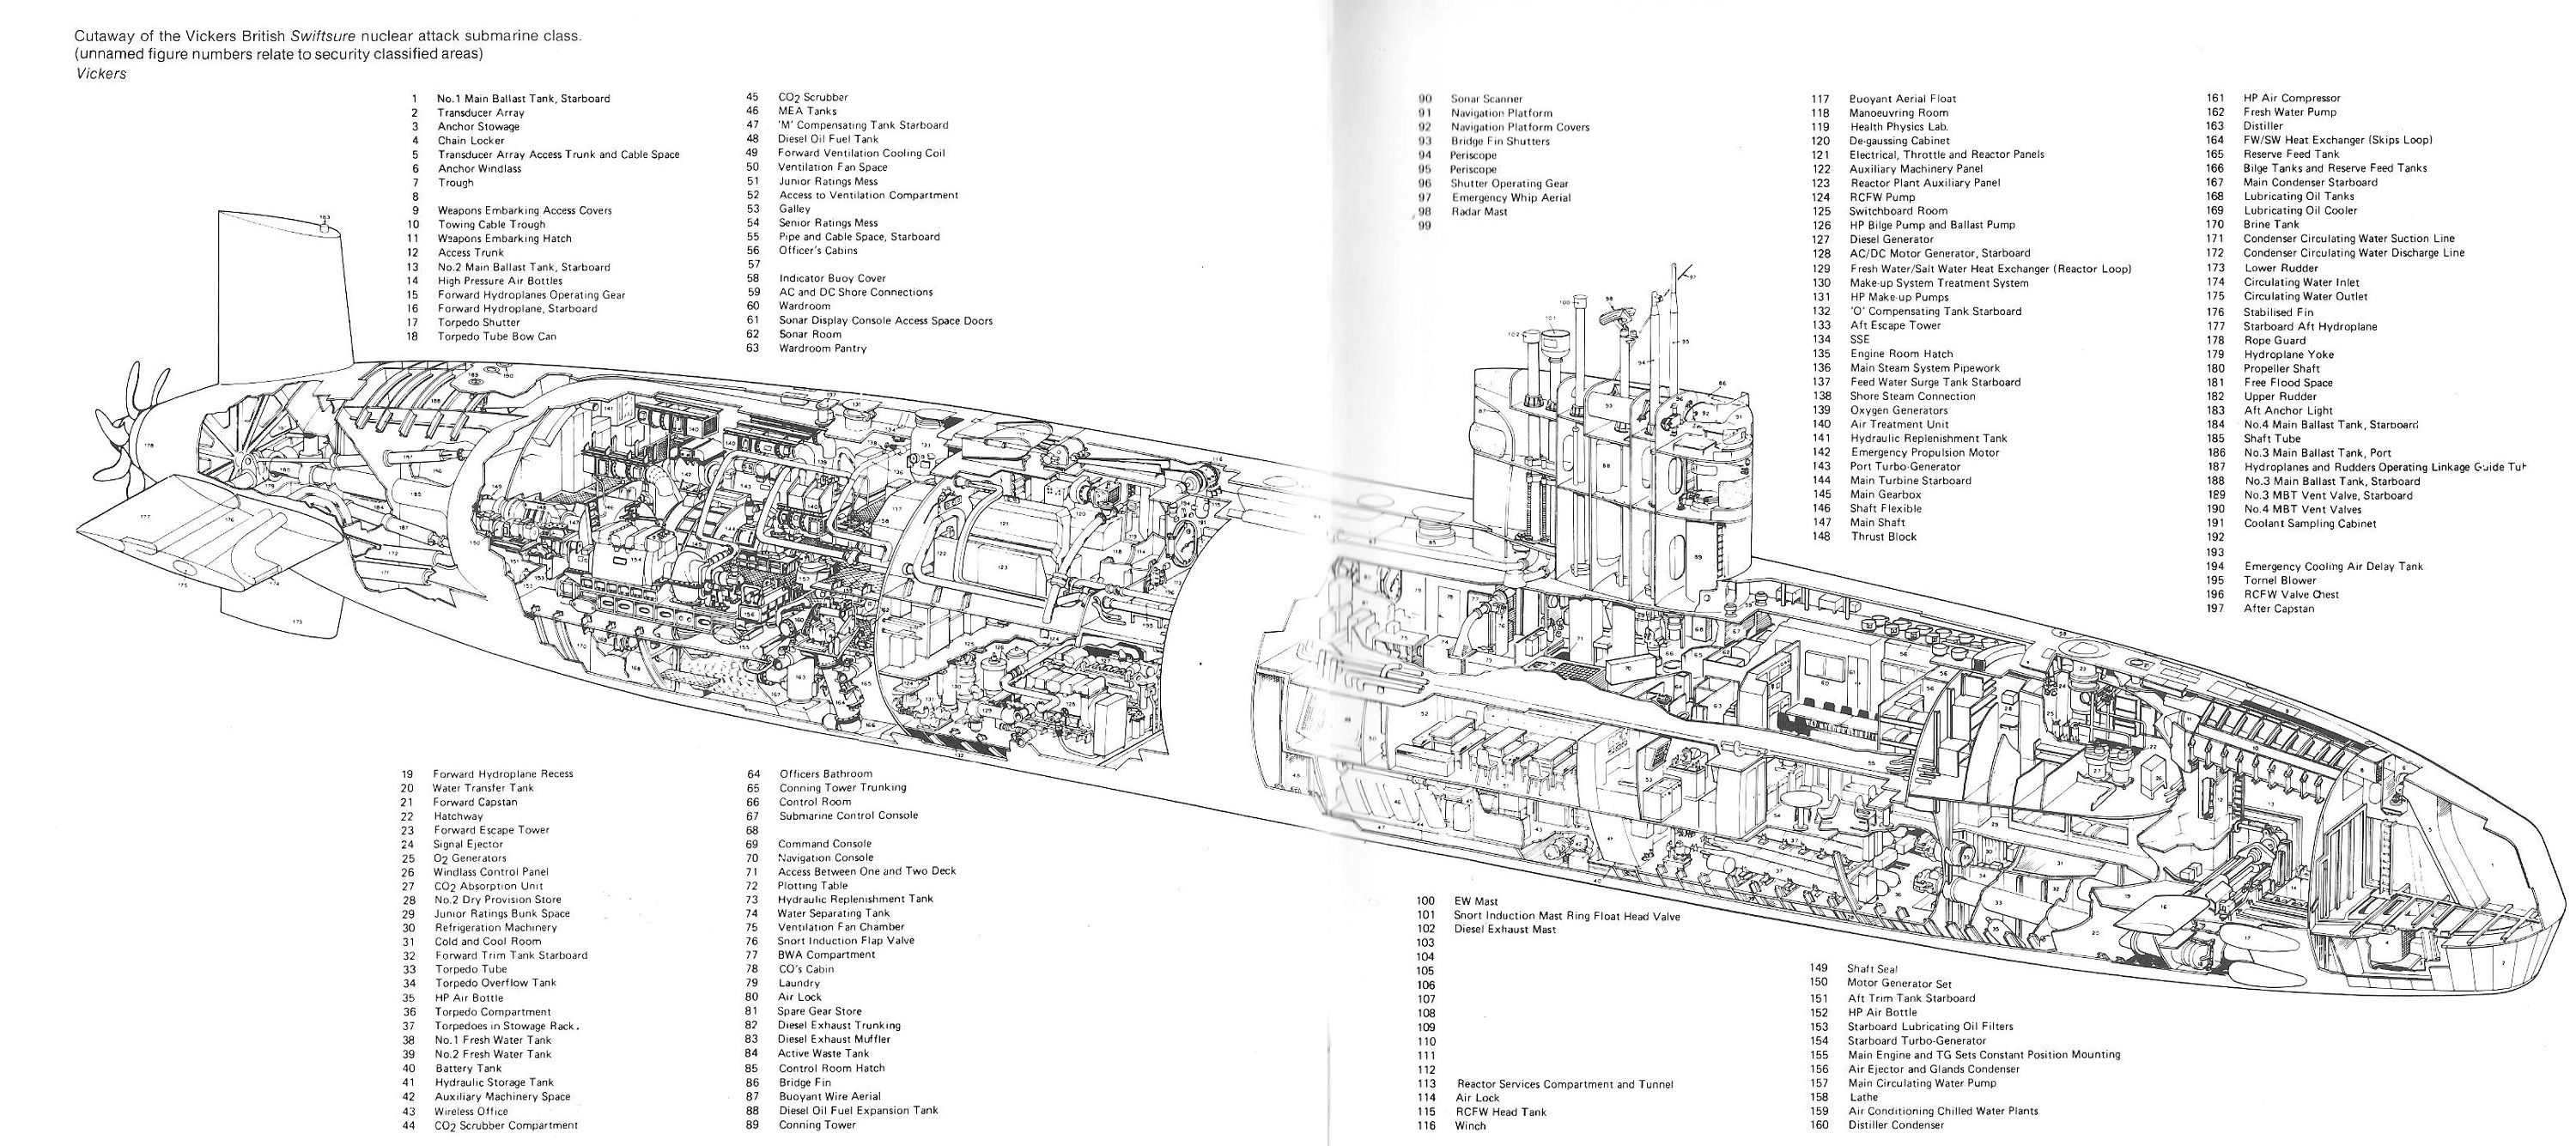 Cutaway Drawing Of Royal Navy Swiftsure Class Submarines